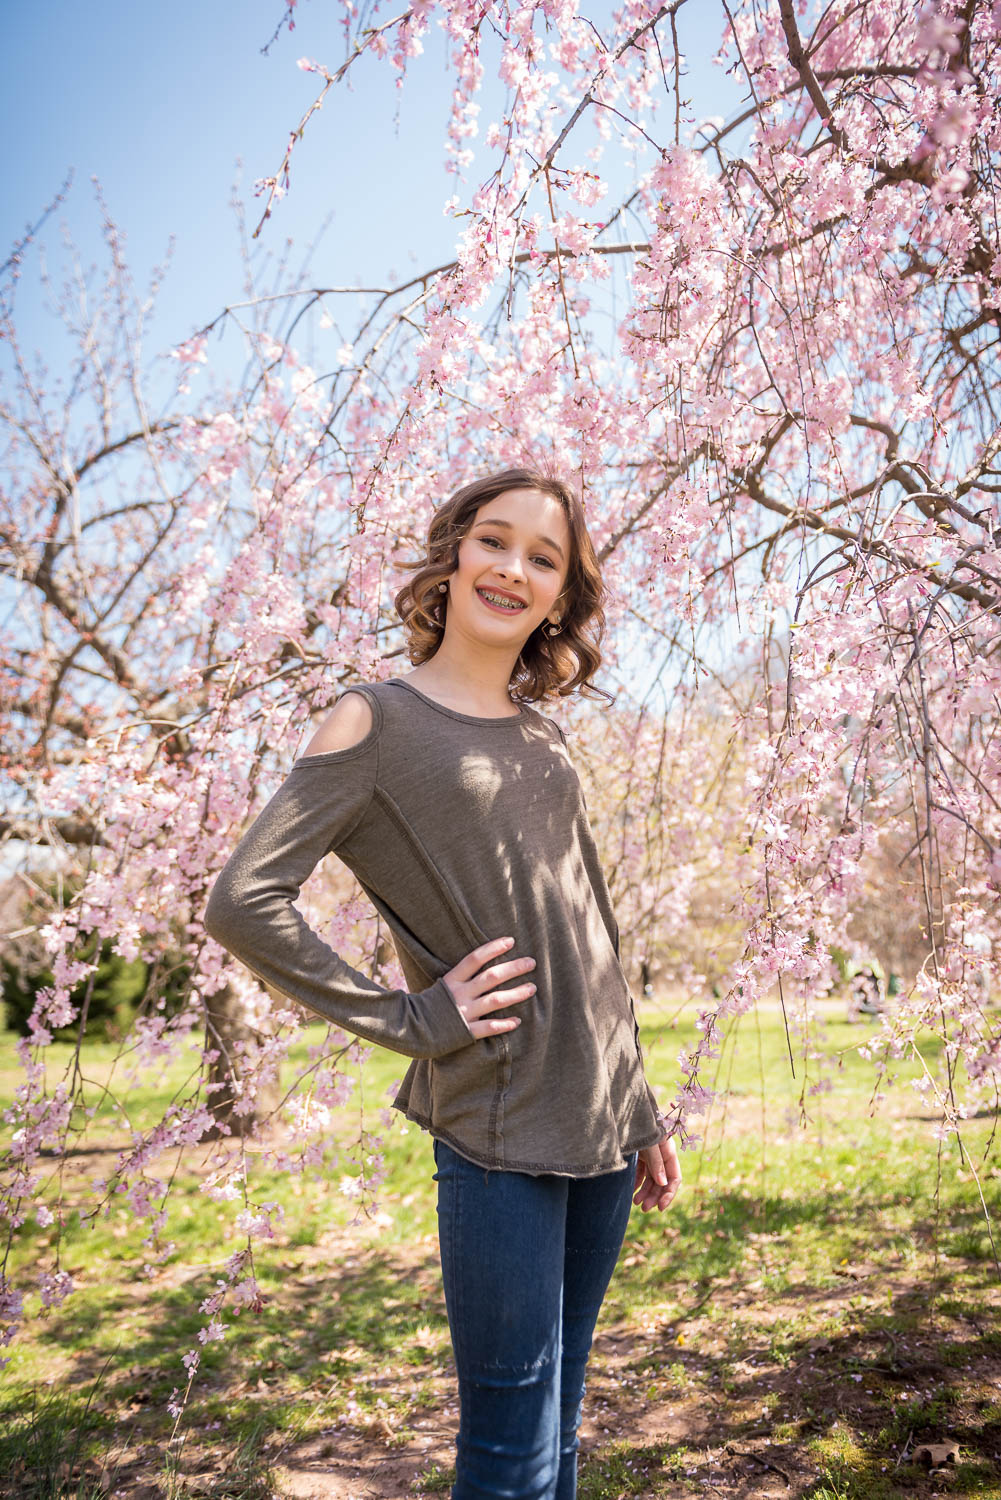 mitzvah glamor session in cherry blossoms